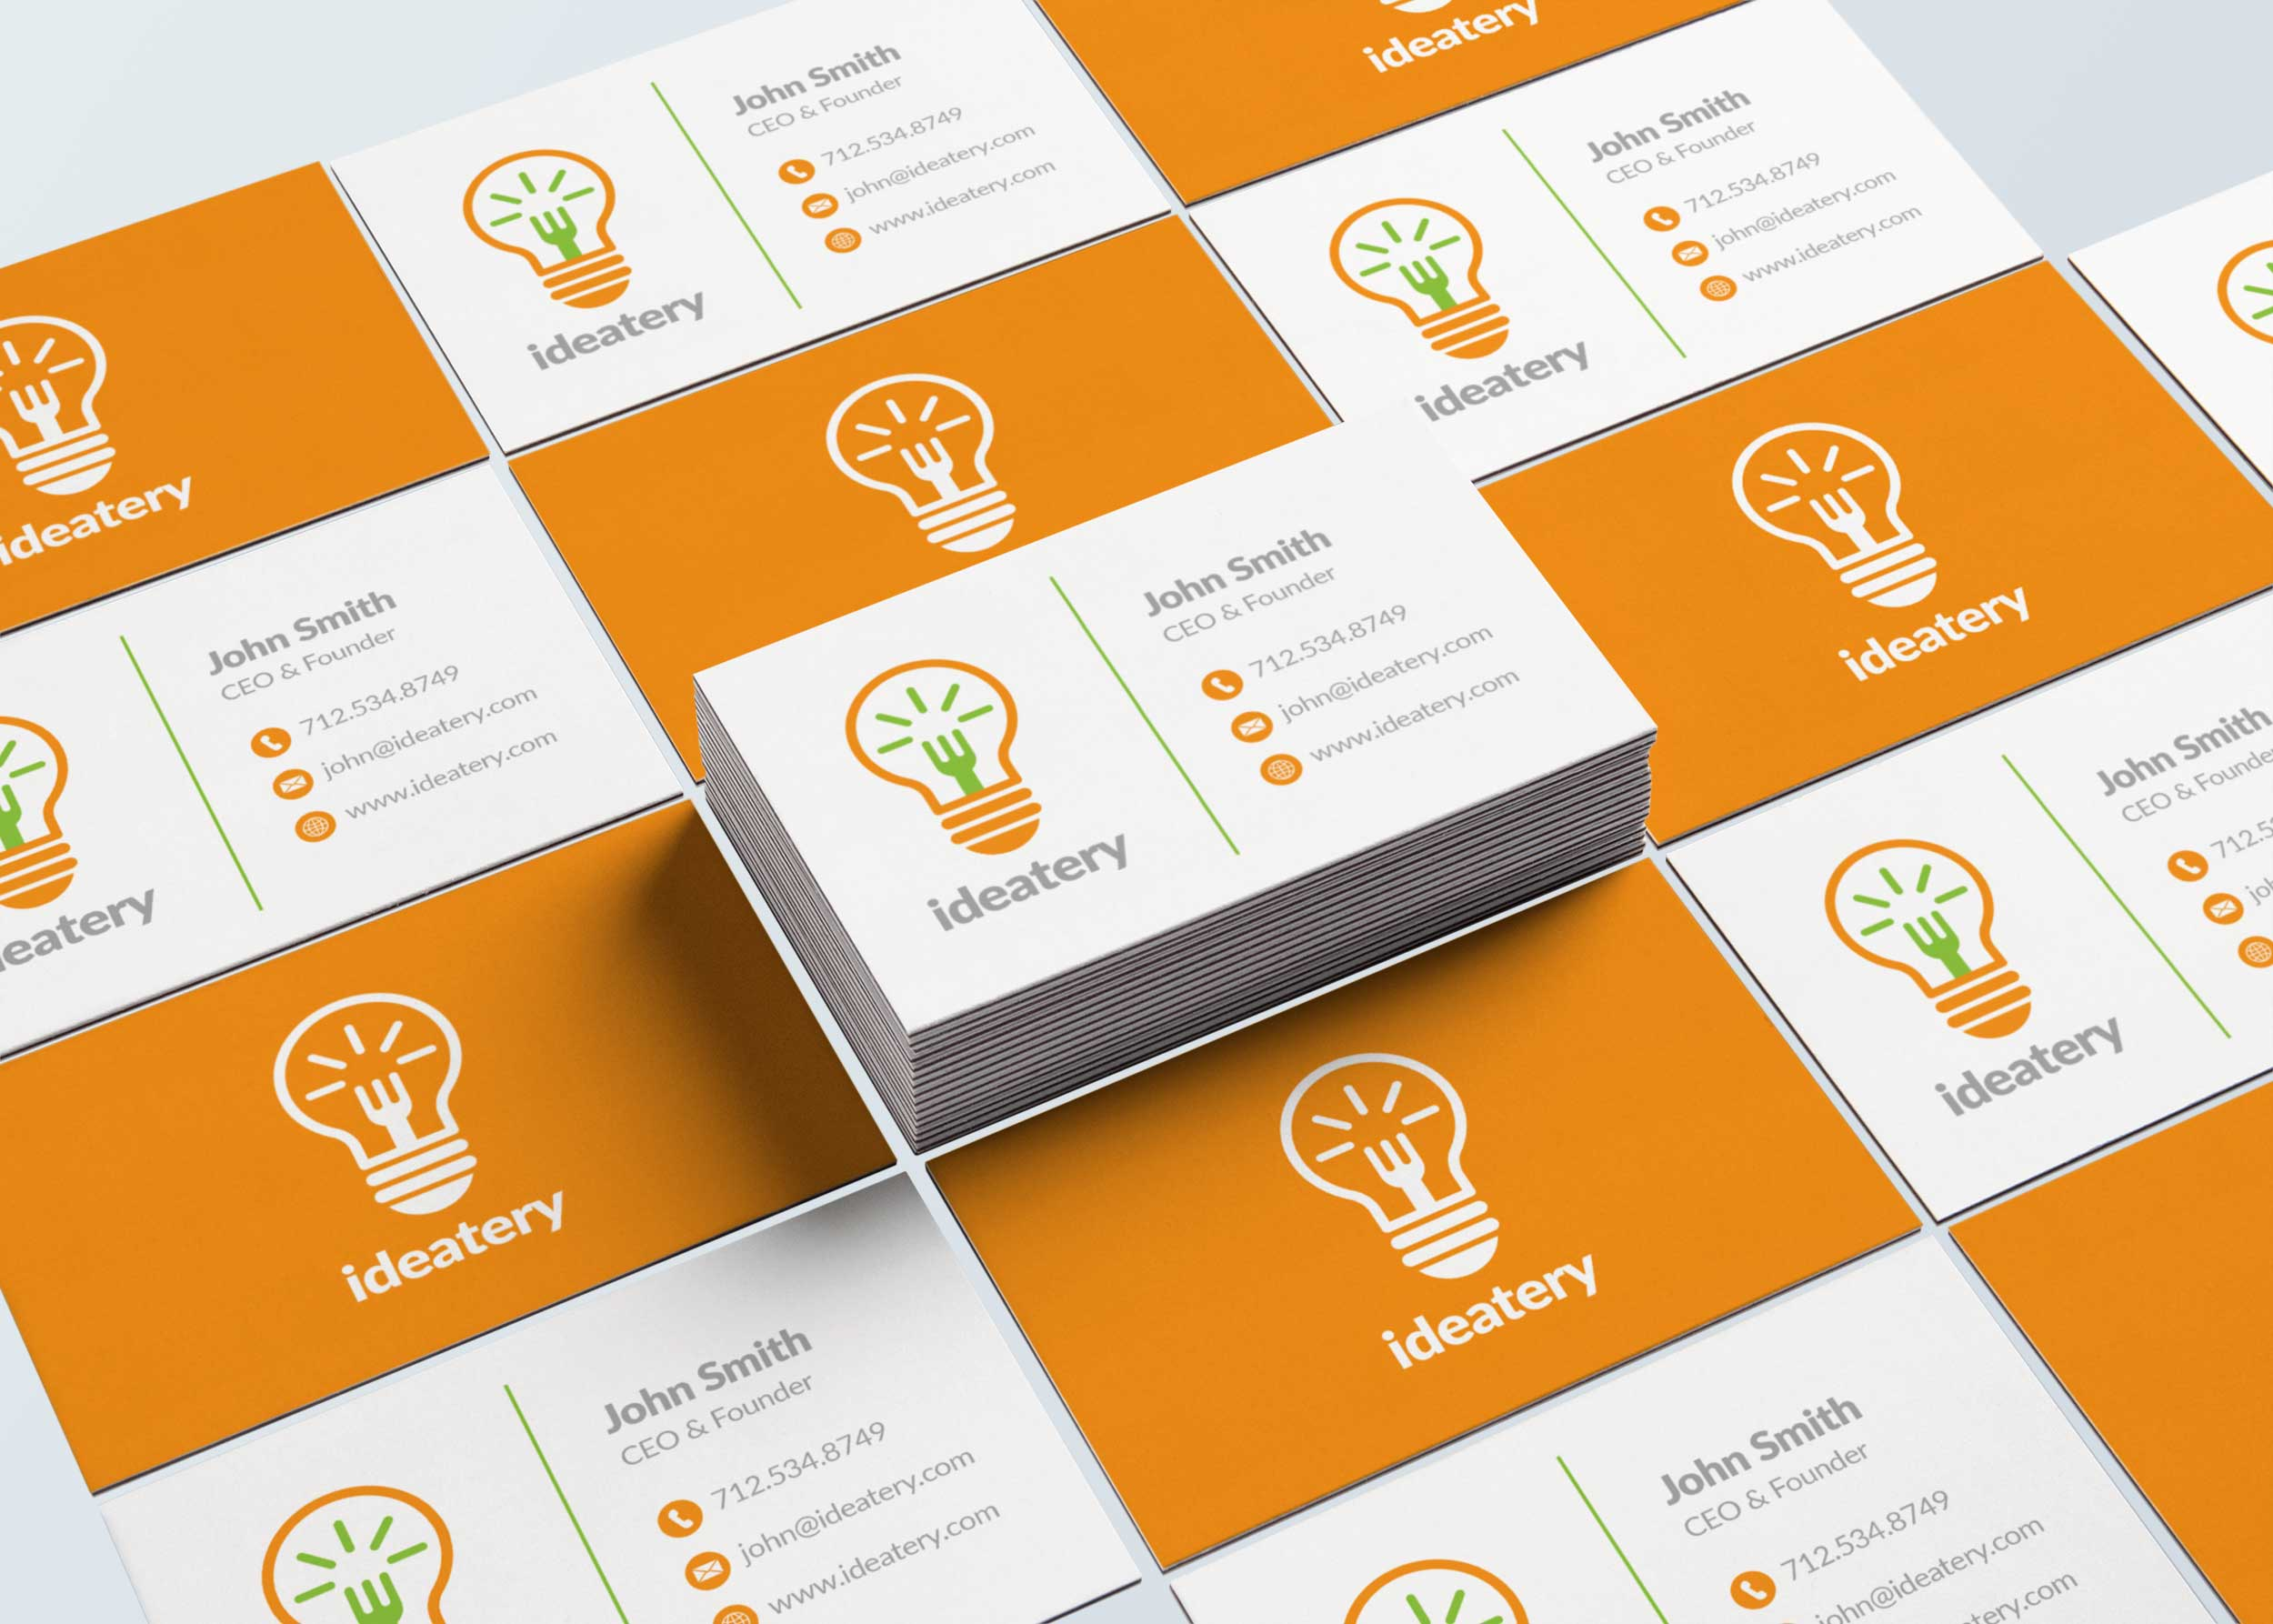 Ideatery Business Cards